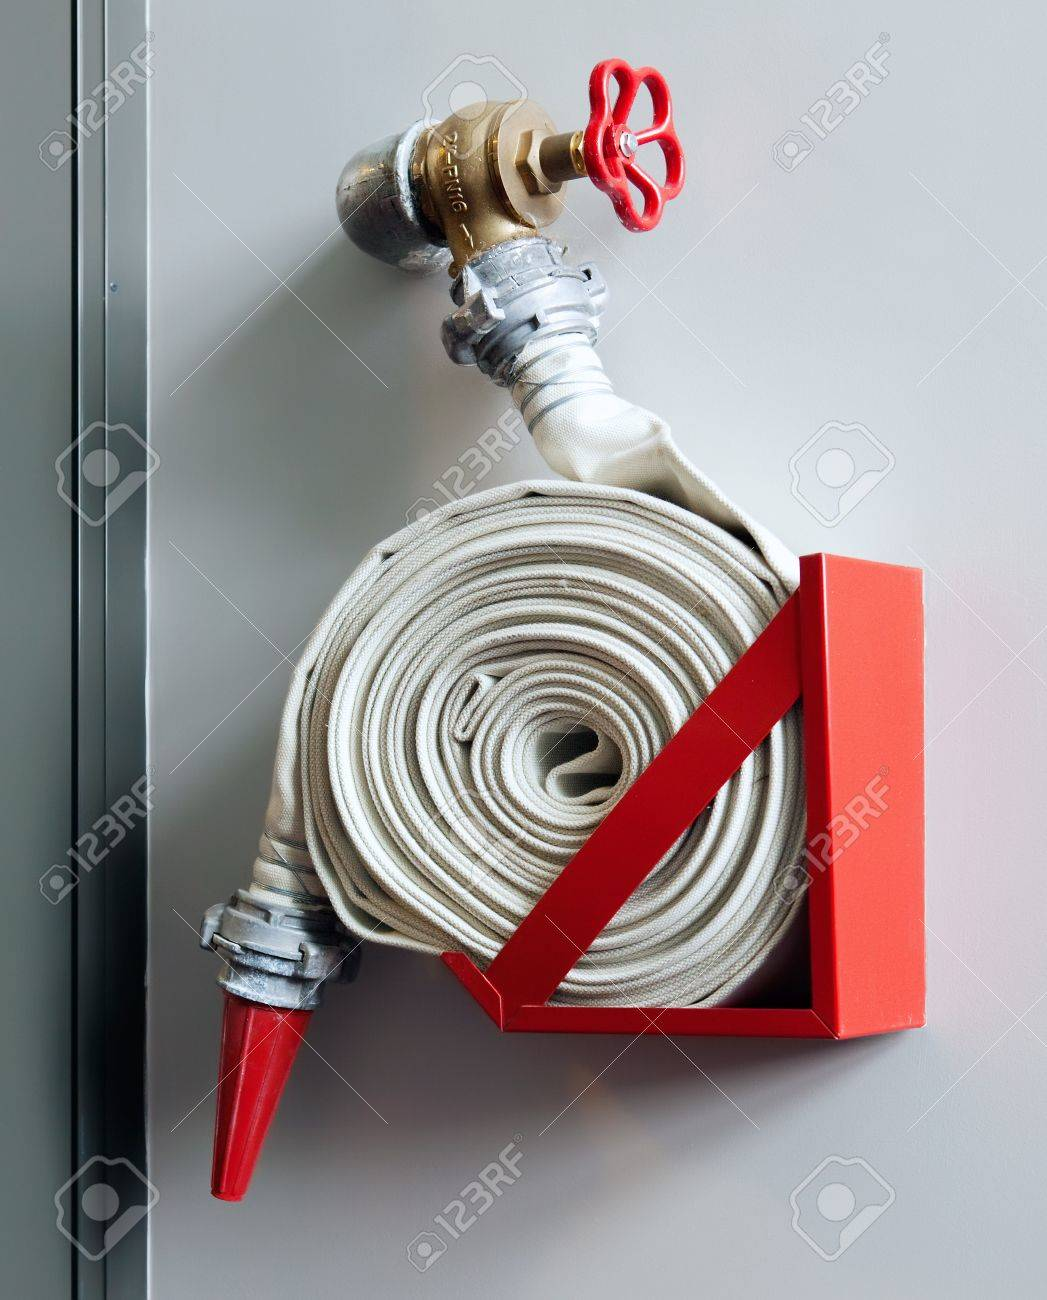 Fire-hose on the wall in a modern building Stock Photo - 10103692